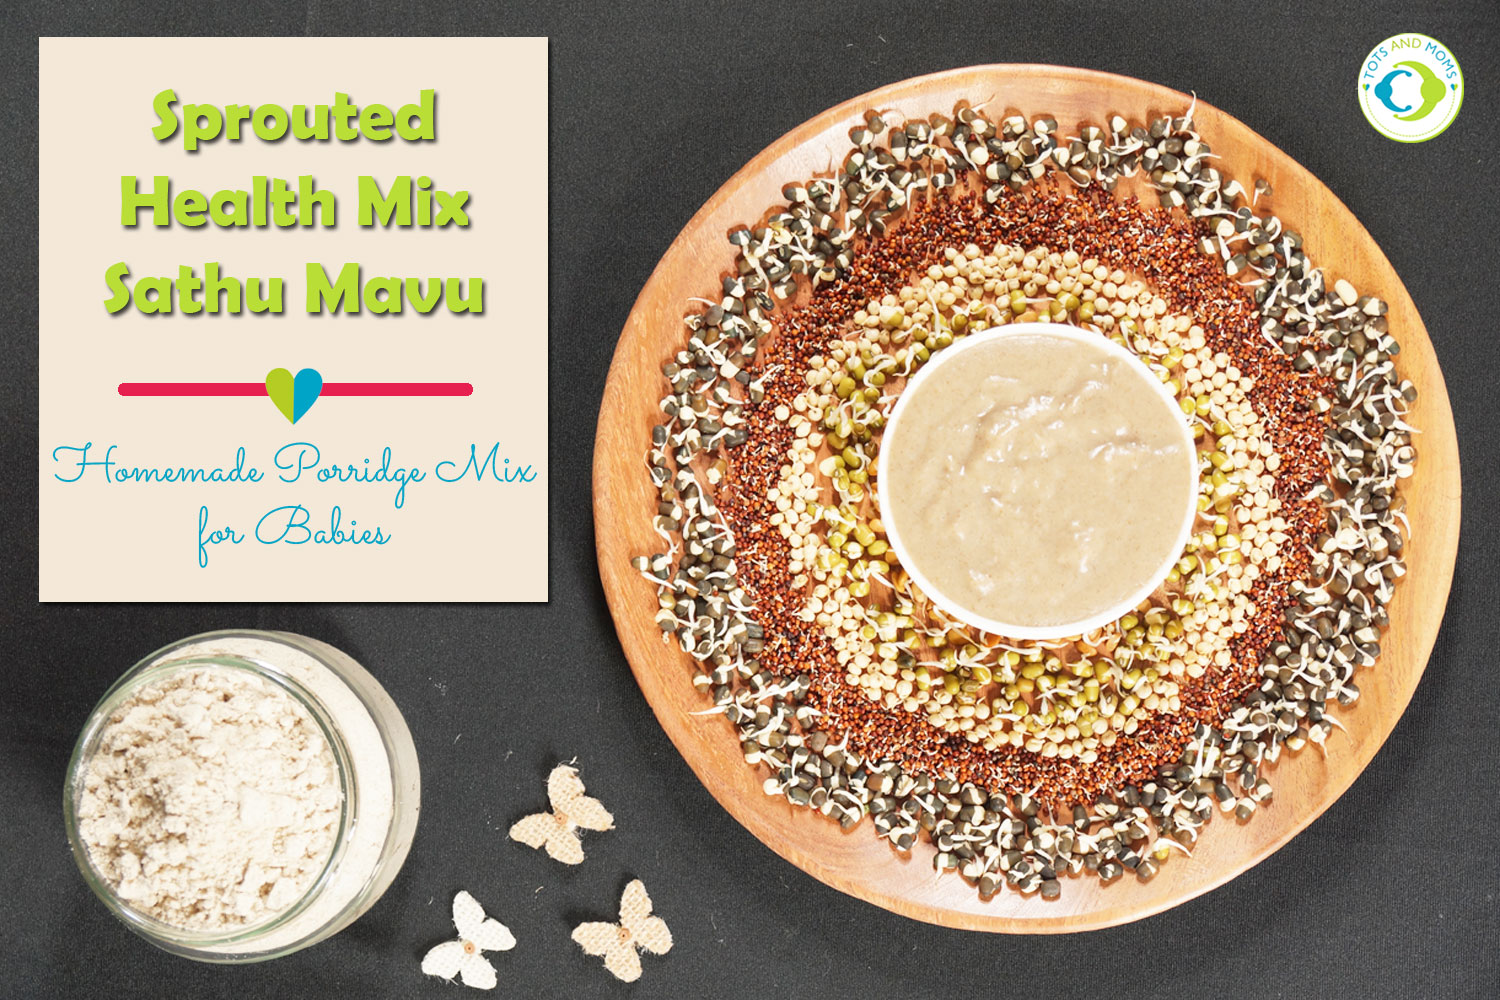 Sprouted Health Mix Sathu Mavu for Babies, kids and family